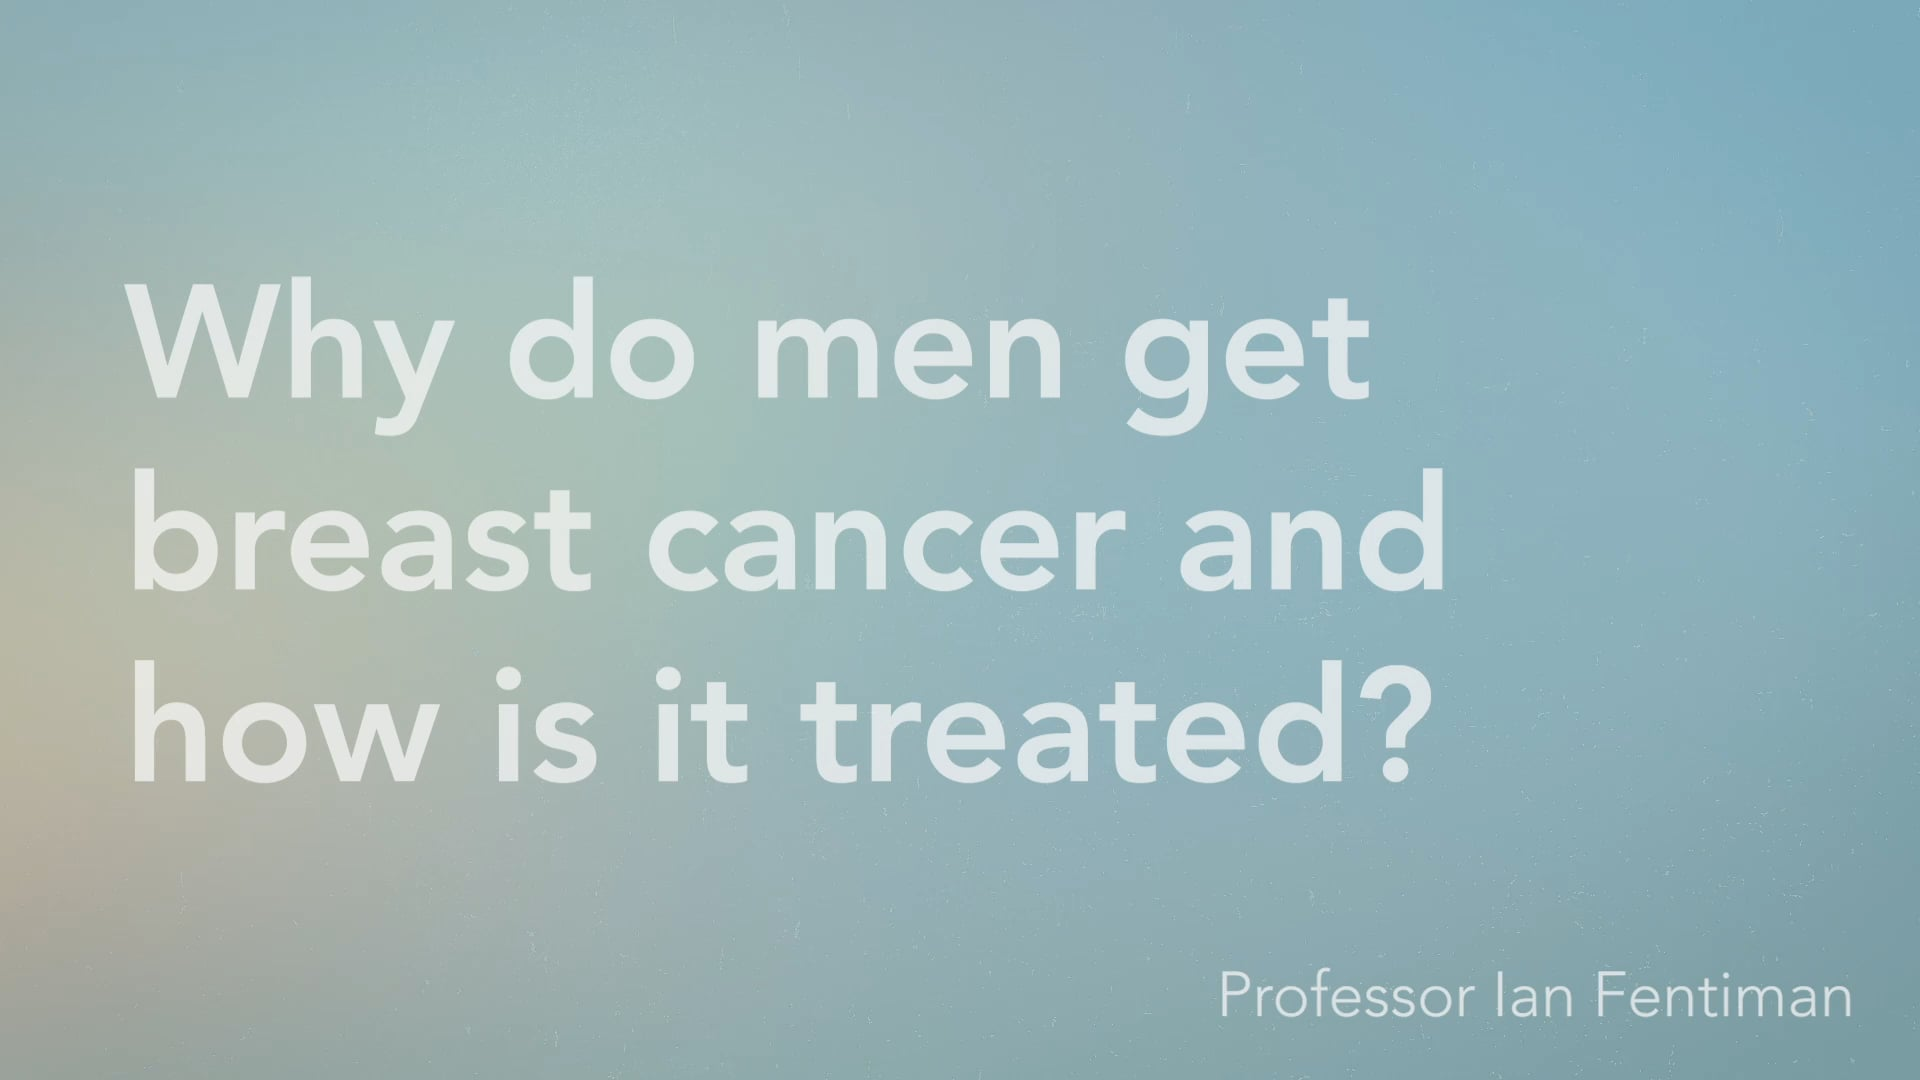 Why do men get breast cancer and how is it treated - Vimeo thumbnail